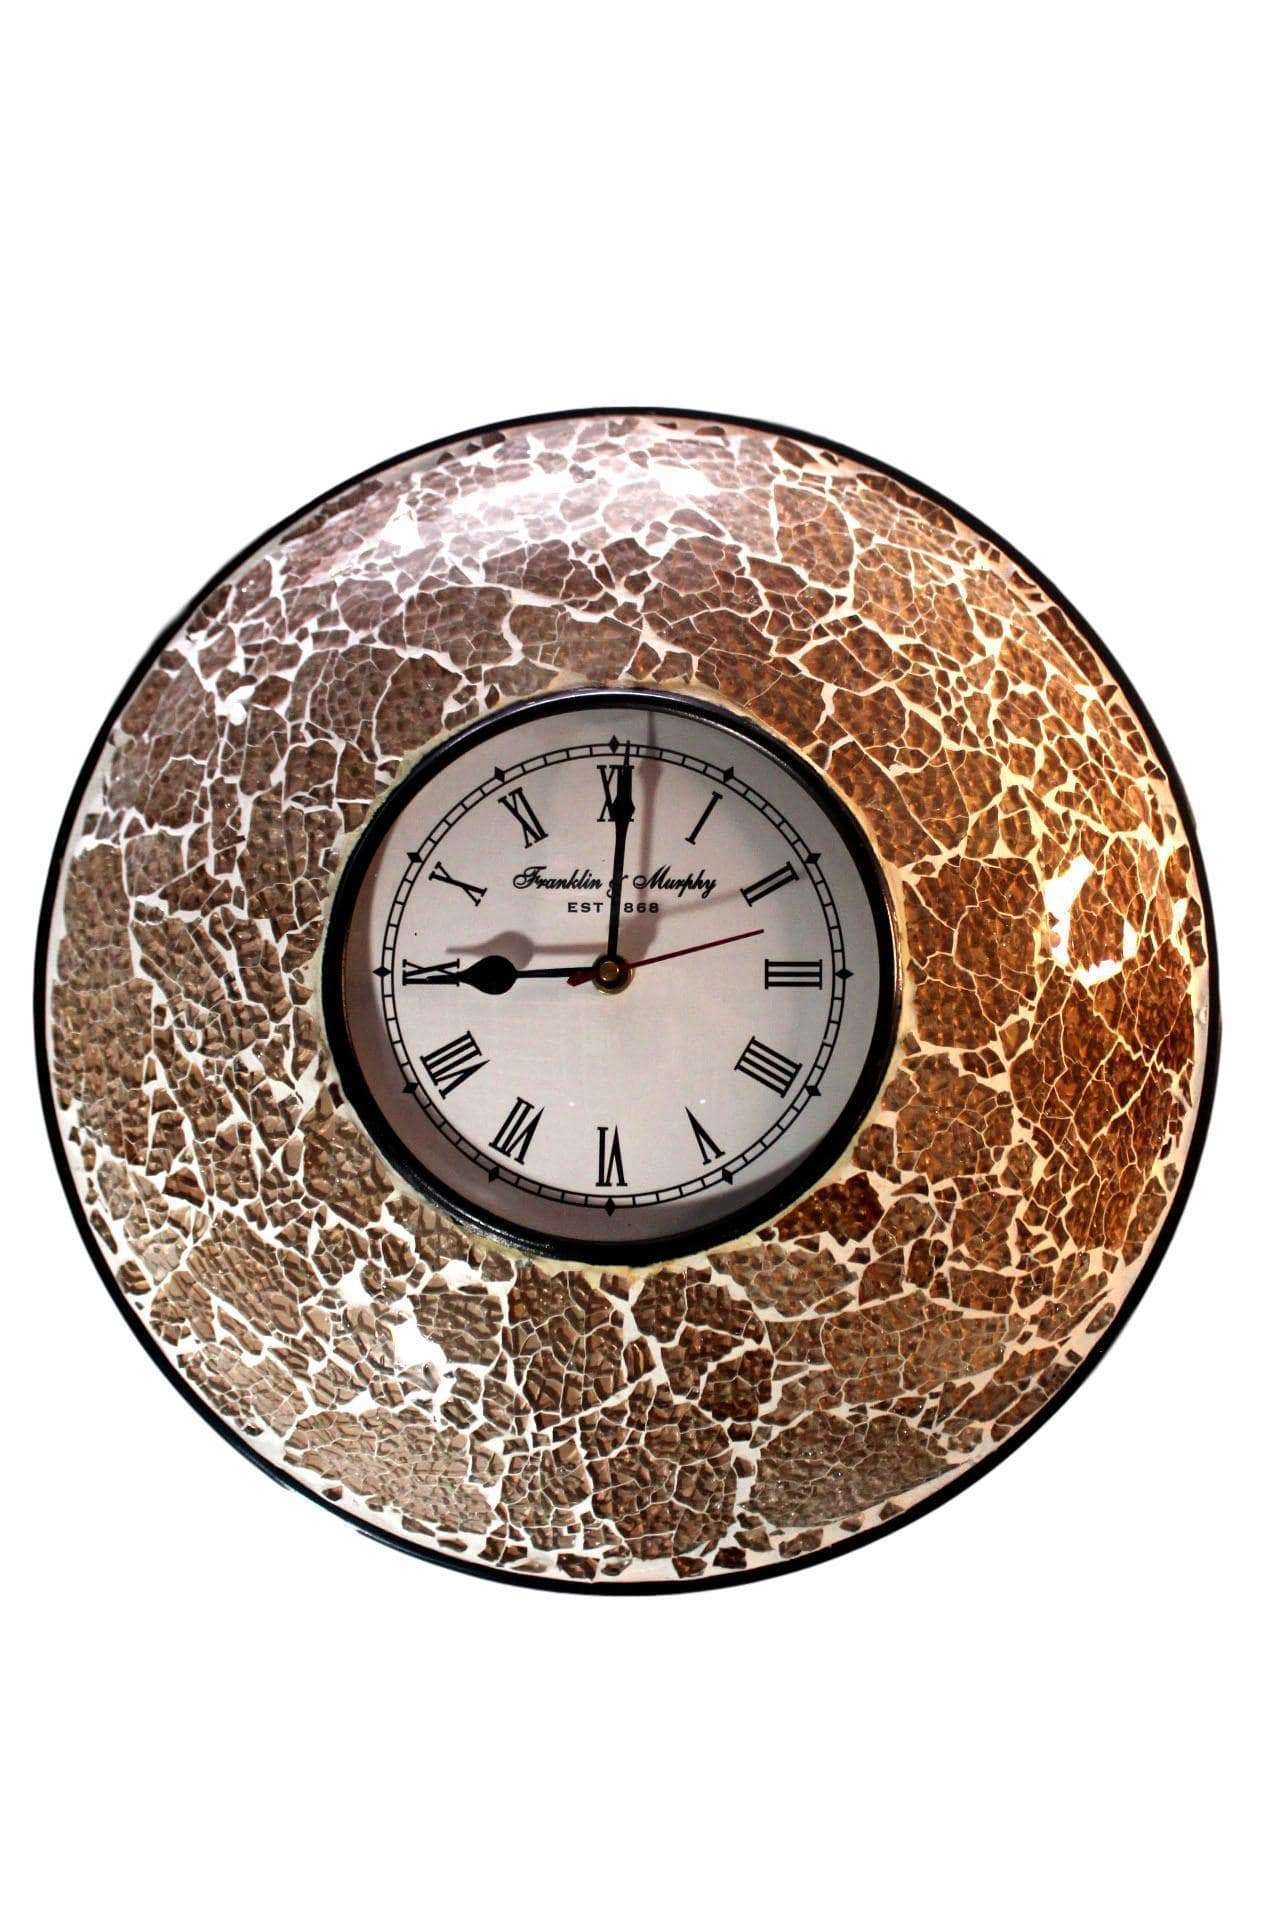 EthniCache Wall Clock Handcrafted Dusky Glass Crackle Frame Large Wall Clock